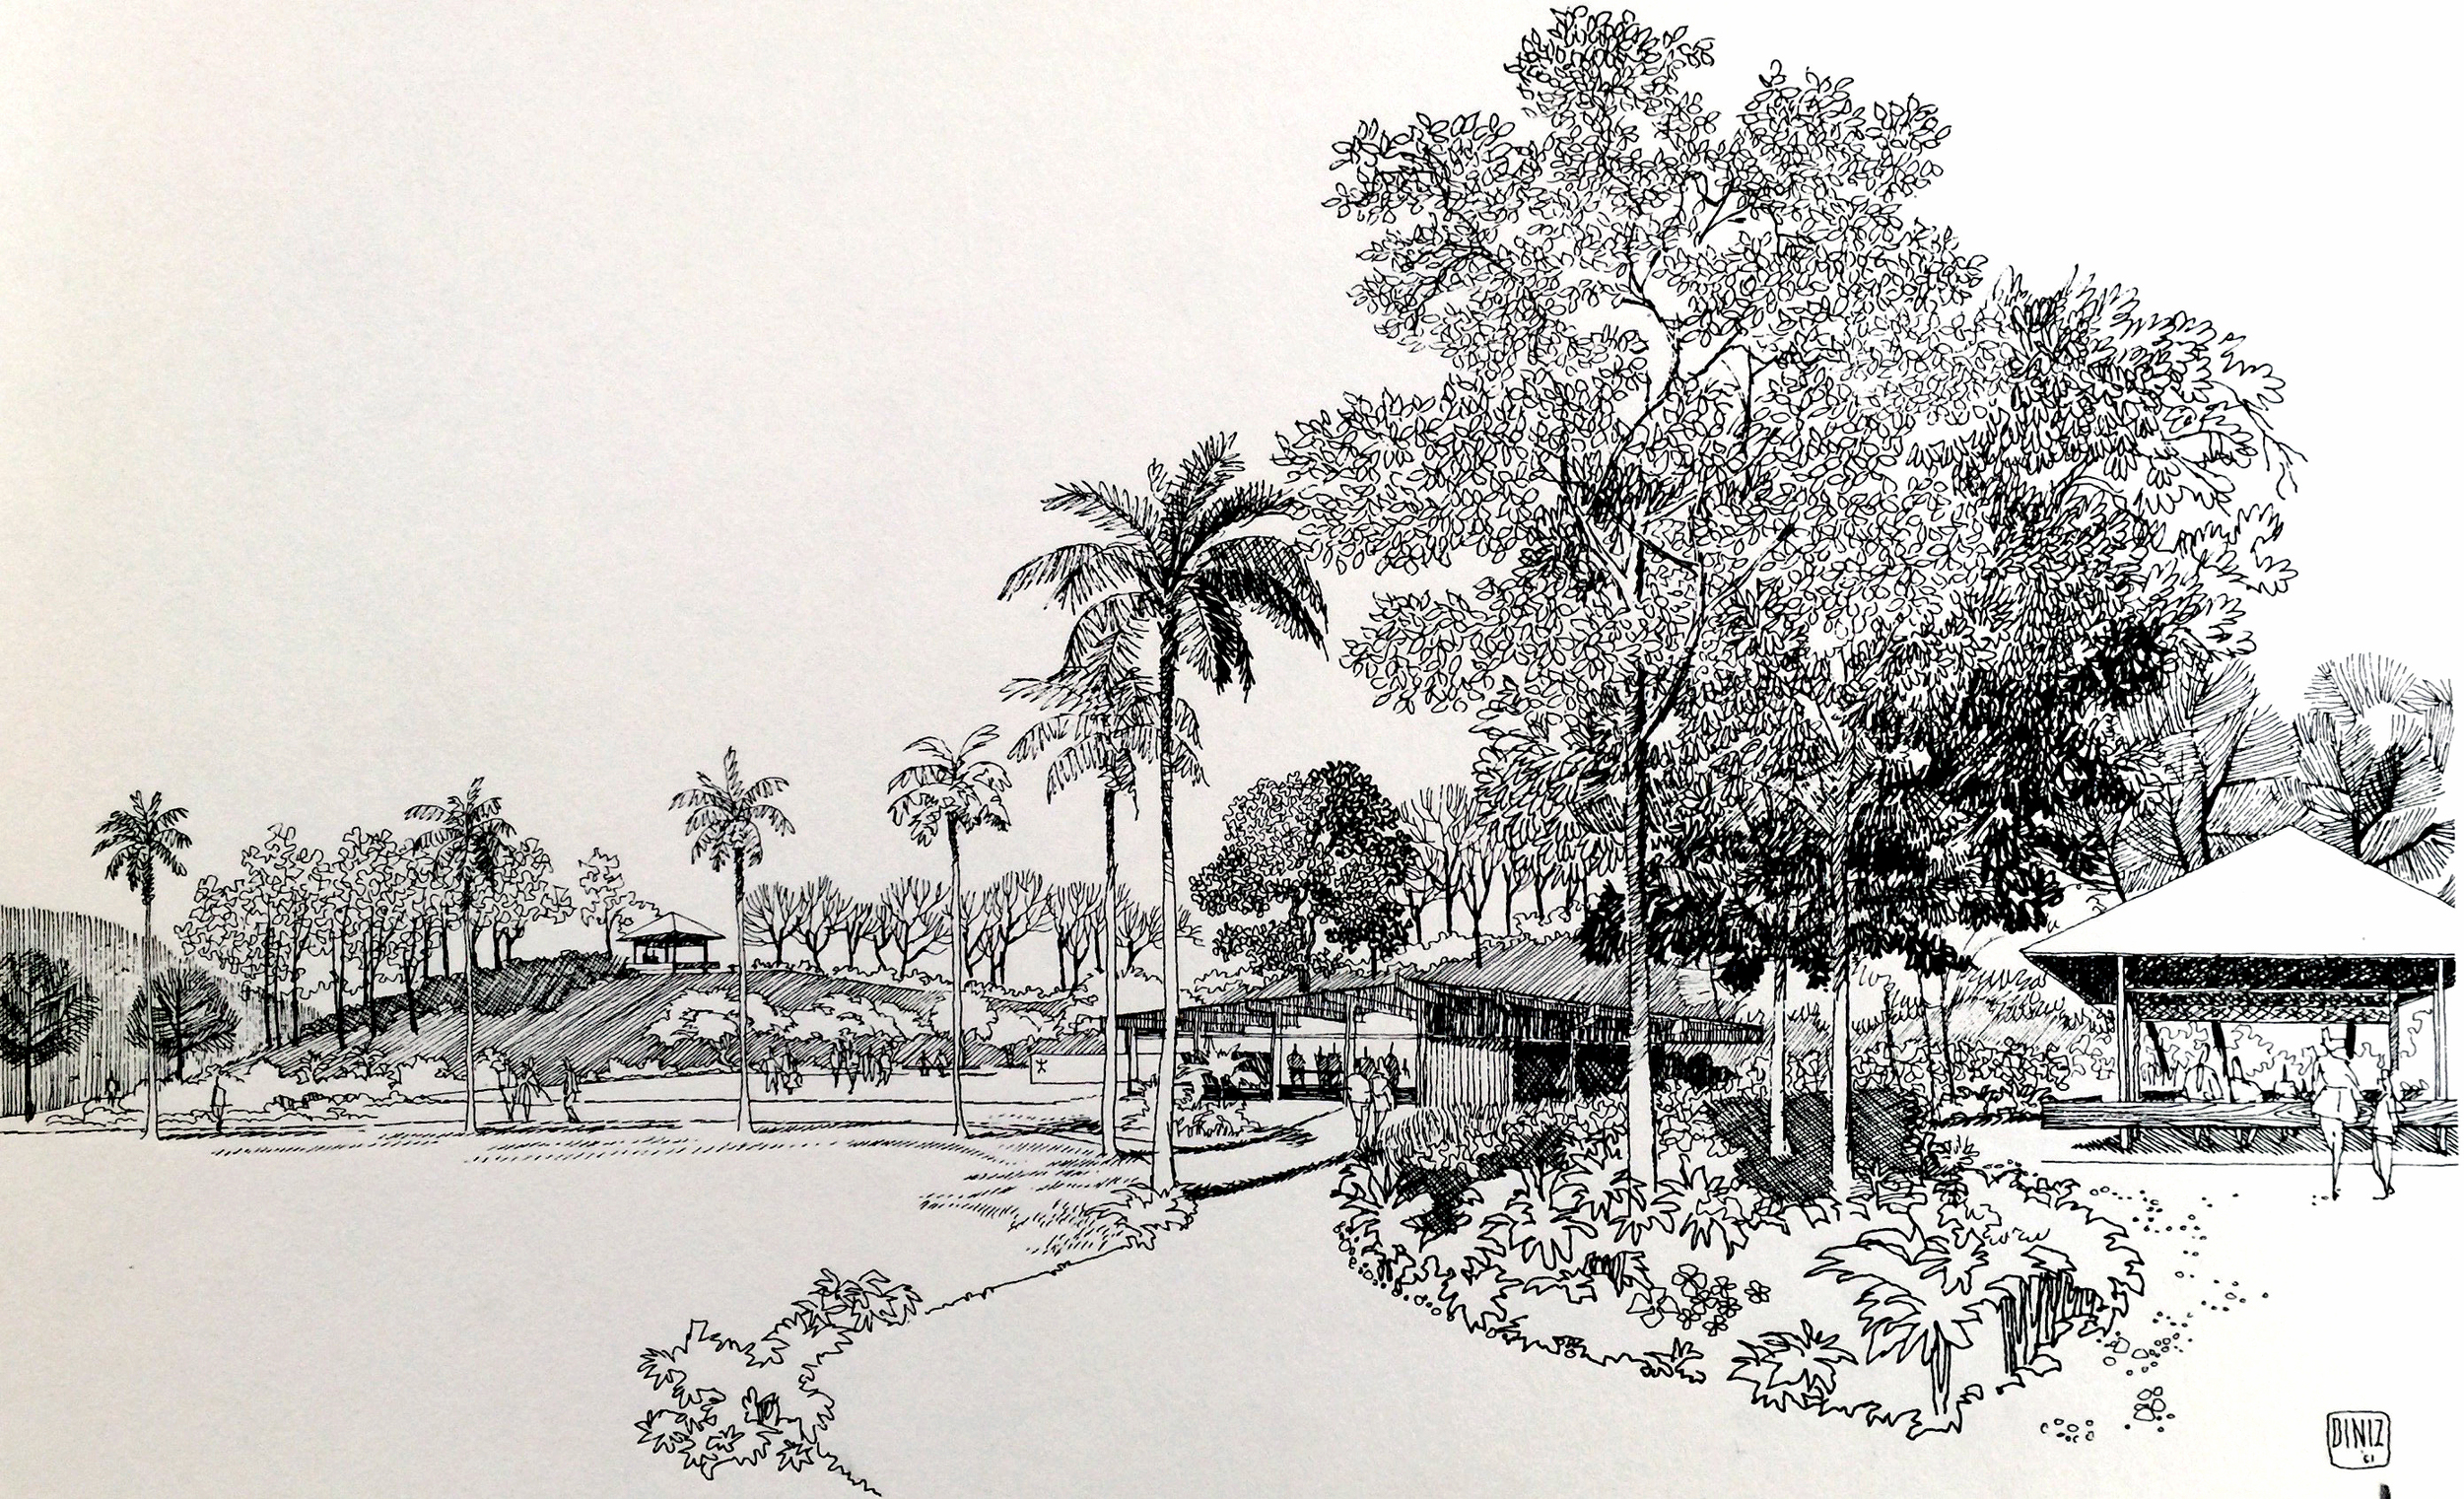 Smith and Williams, Architects and Engineers. Central Park, California City. 1962.Architecture and Design Collection, University Art Museum, UCSB.